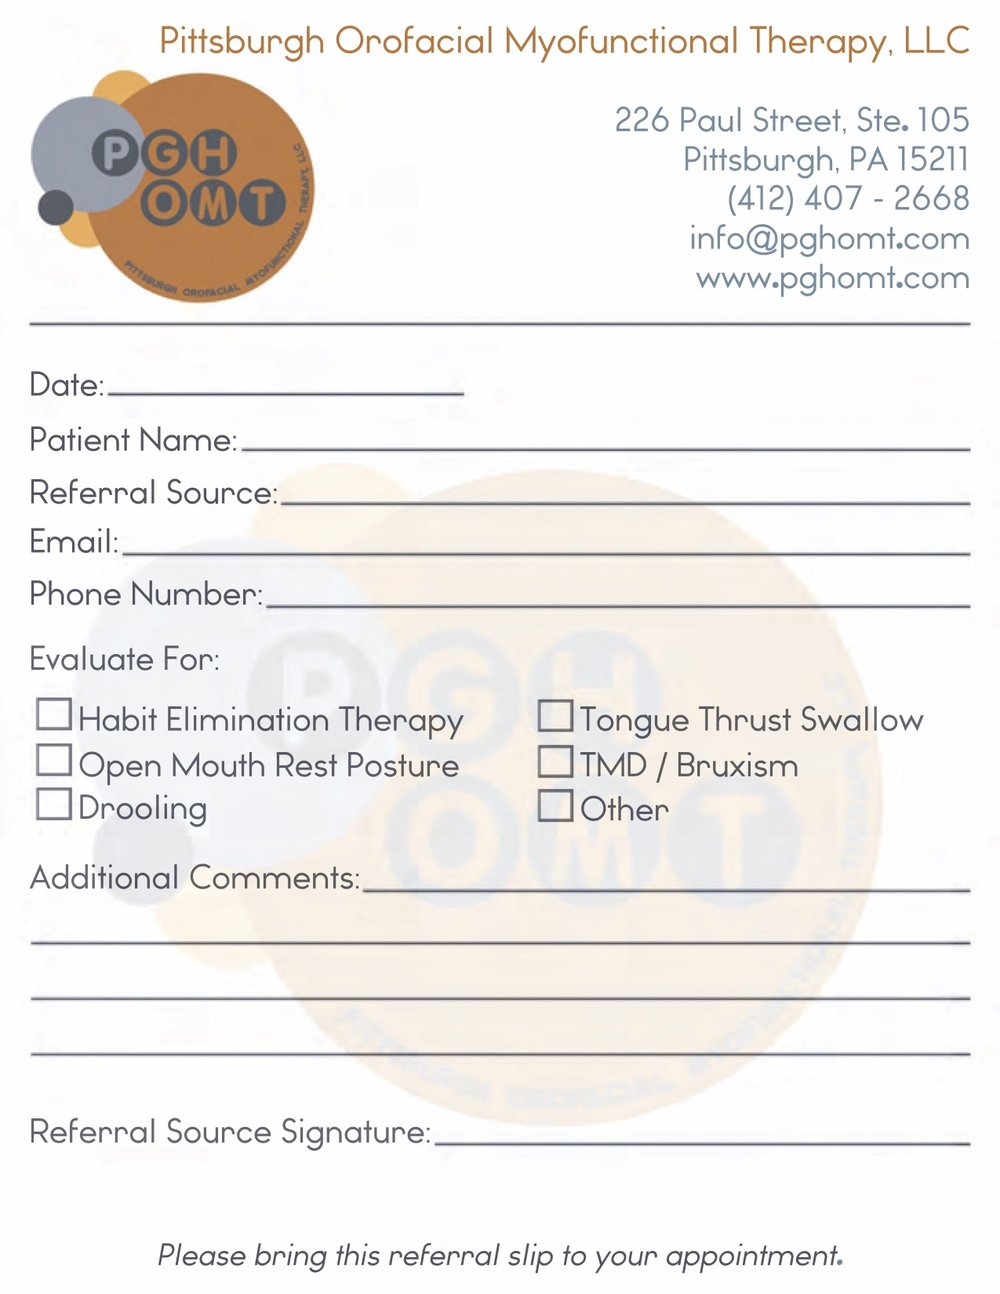 Your provider doesn't have a referral pad? No problem.  - We've added a printable referral slip to our website for your convenience.Note: A referral is not required for treatment.